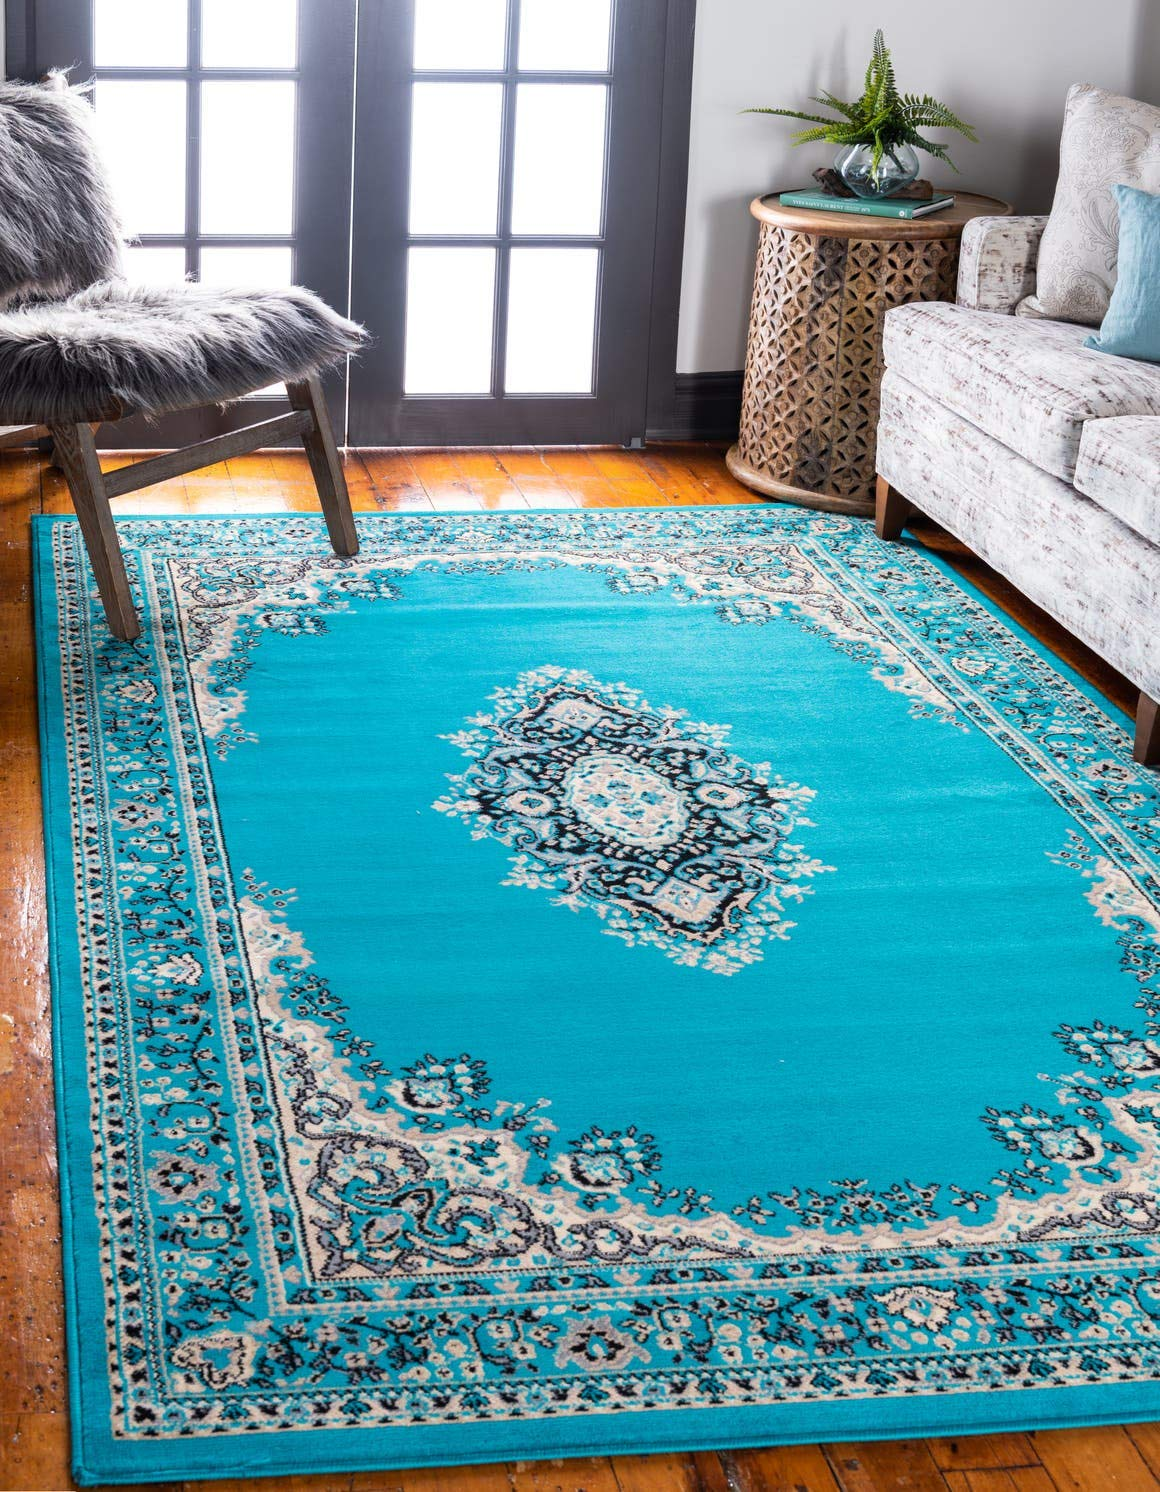 Unique Loom Reza Collection Classic Traditional Turquoise Area Rug 4 0 x 6 0